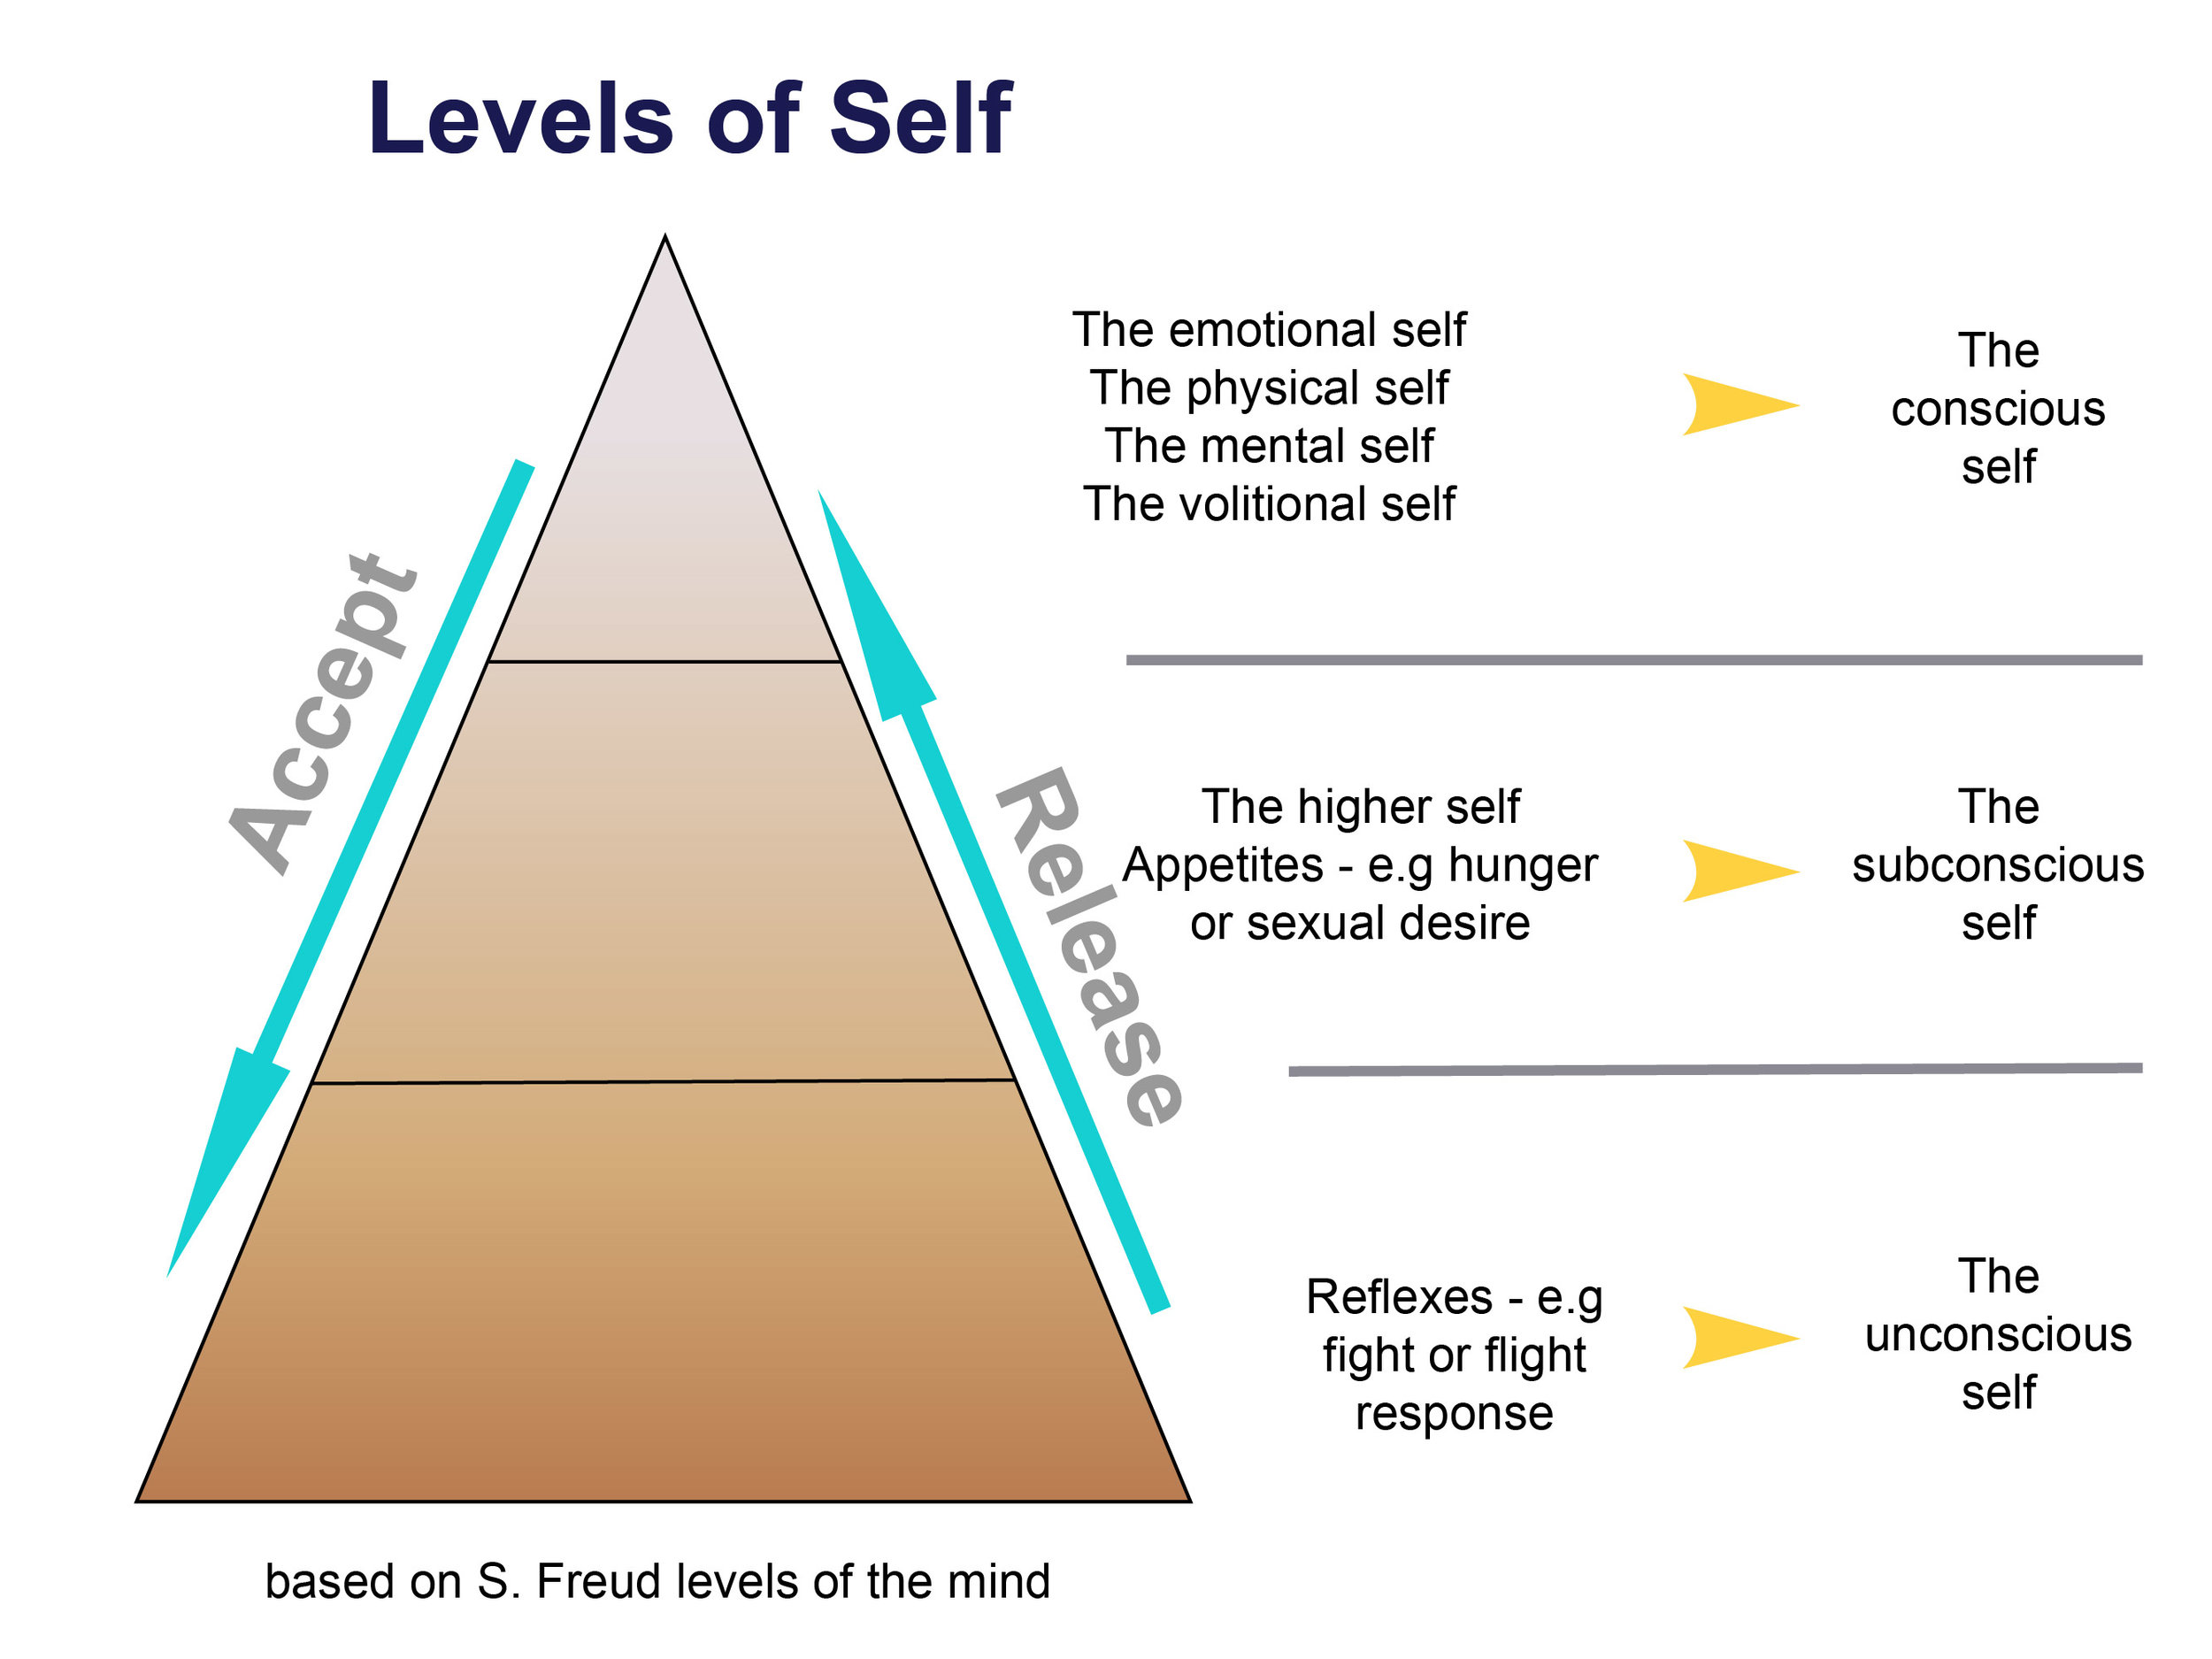 This diagram based on the work of Sigmund Freud shows how the levels of self govern the different parts of our behaviour. Change has to work with the levels of self if it is going to stick.